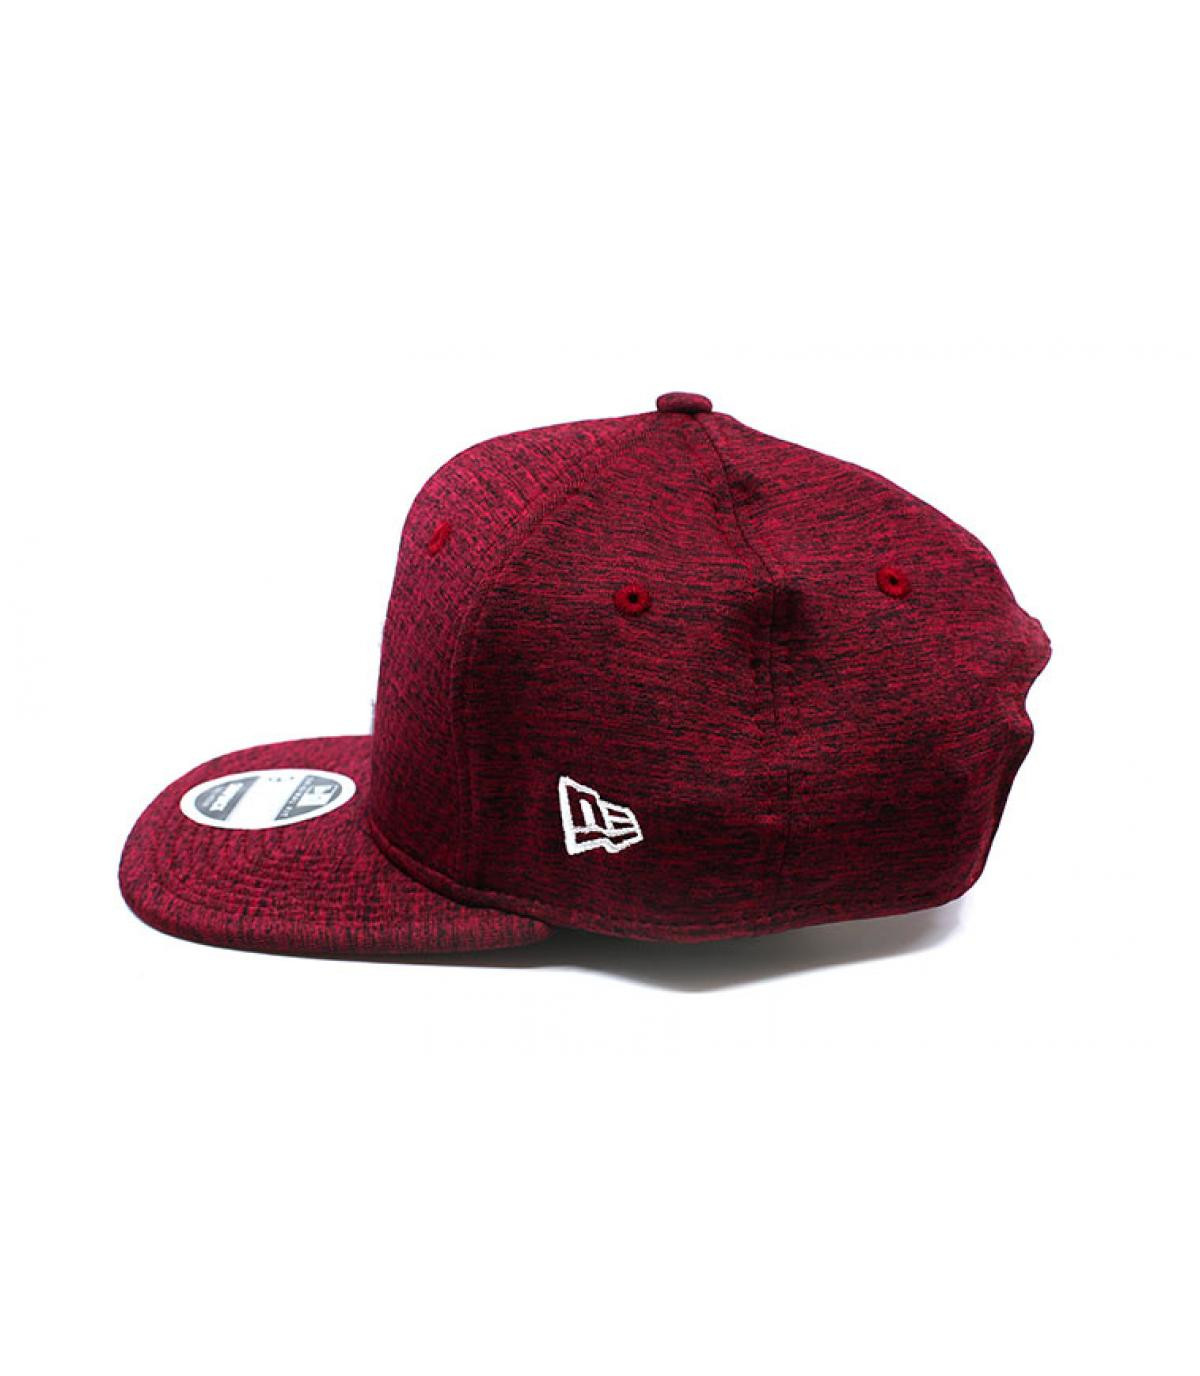 Details Dry Switch Boston 9Fifty cardinal - afbeeling 4